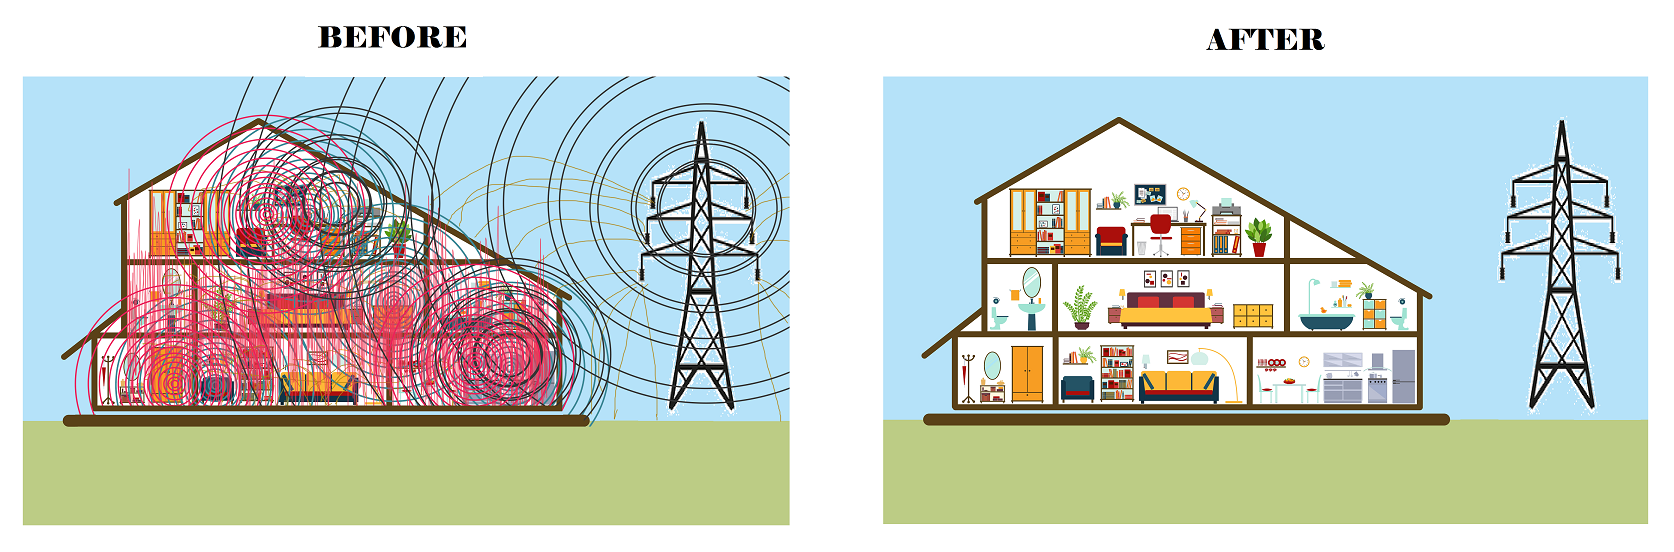 house before and after emf mitigation electromagnetic fields remediation